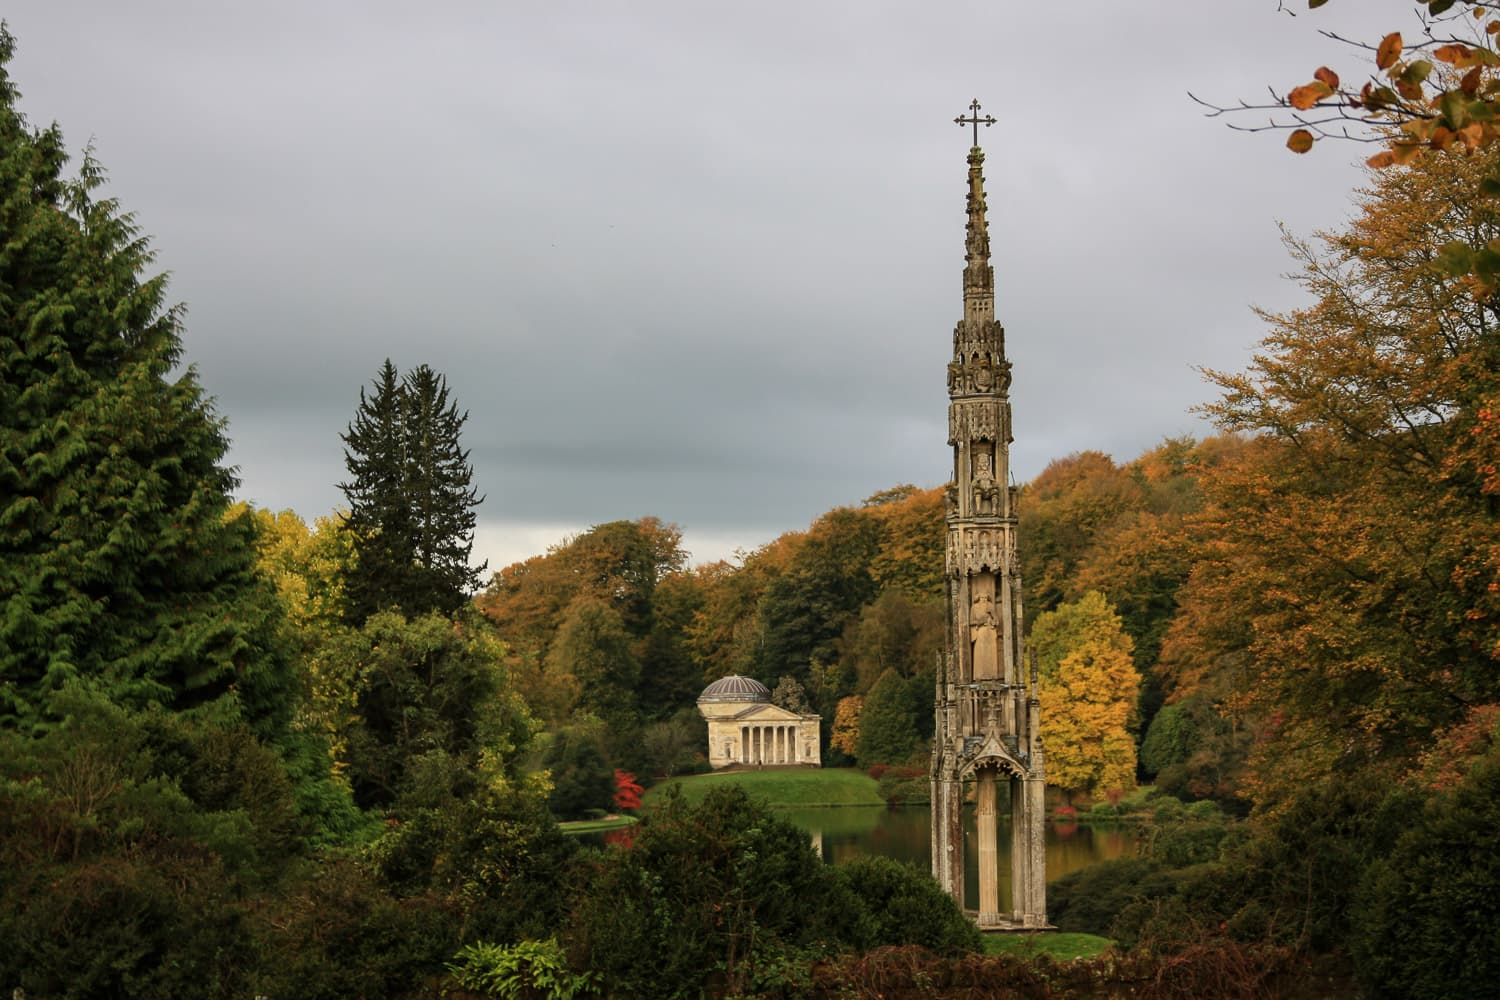 An ancient cross with building behind at Stourhead gardens